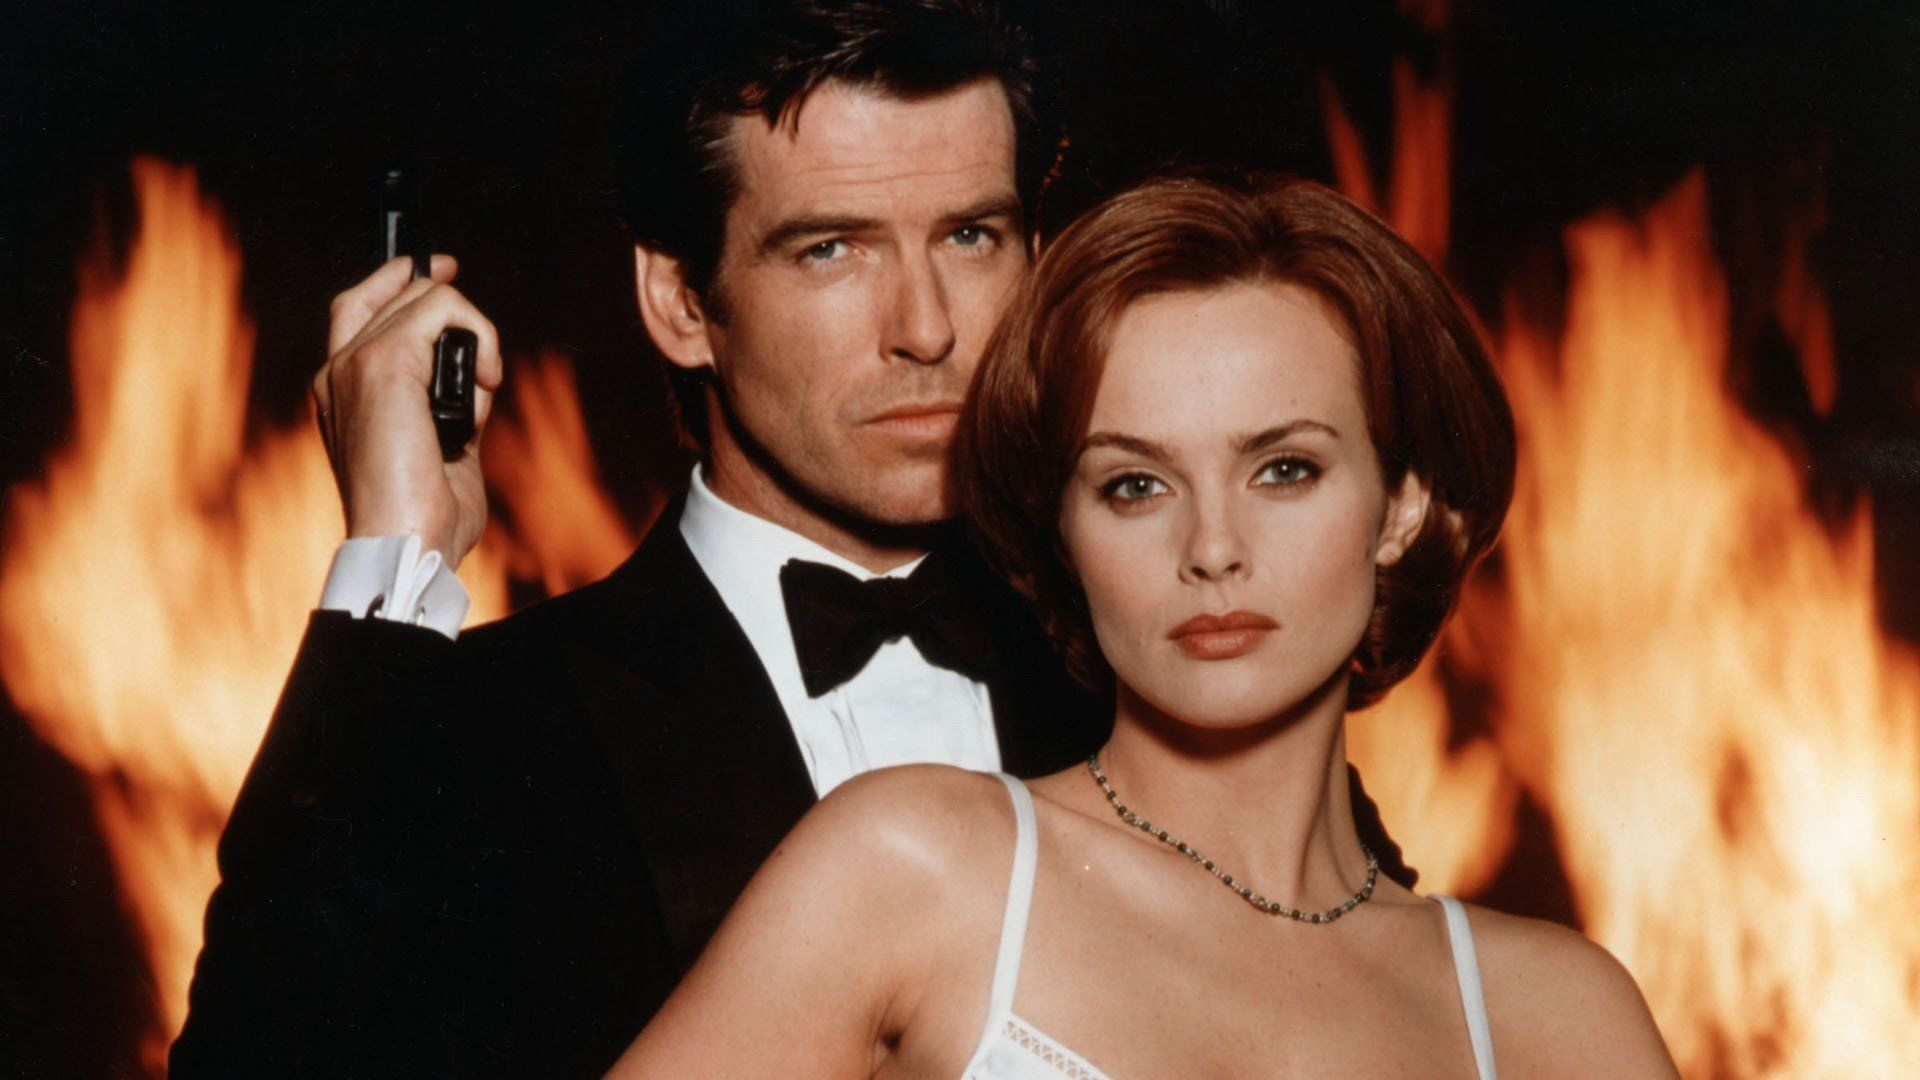 Movies James Bond Pierce Brosnan Izabella Scorupco Go